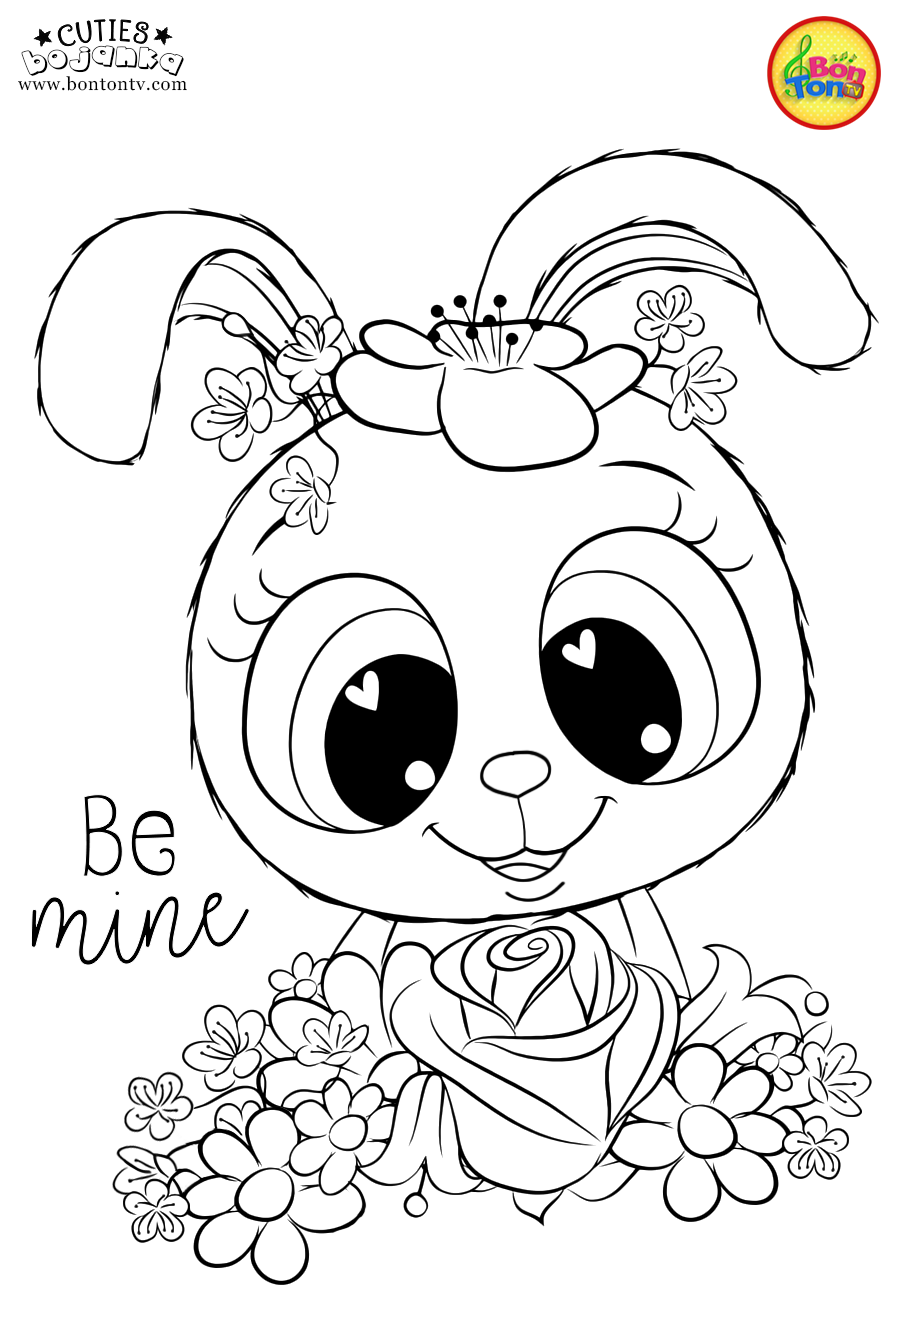 Cuties Coloring Pages for Kids - Free Preschool Printables ...